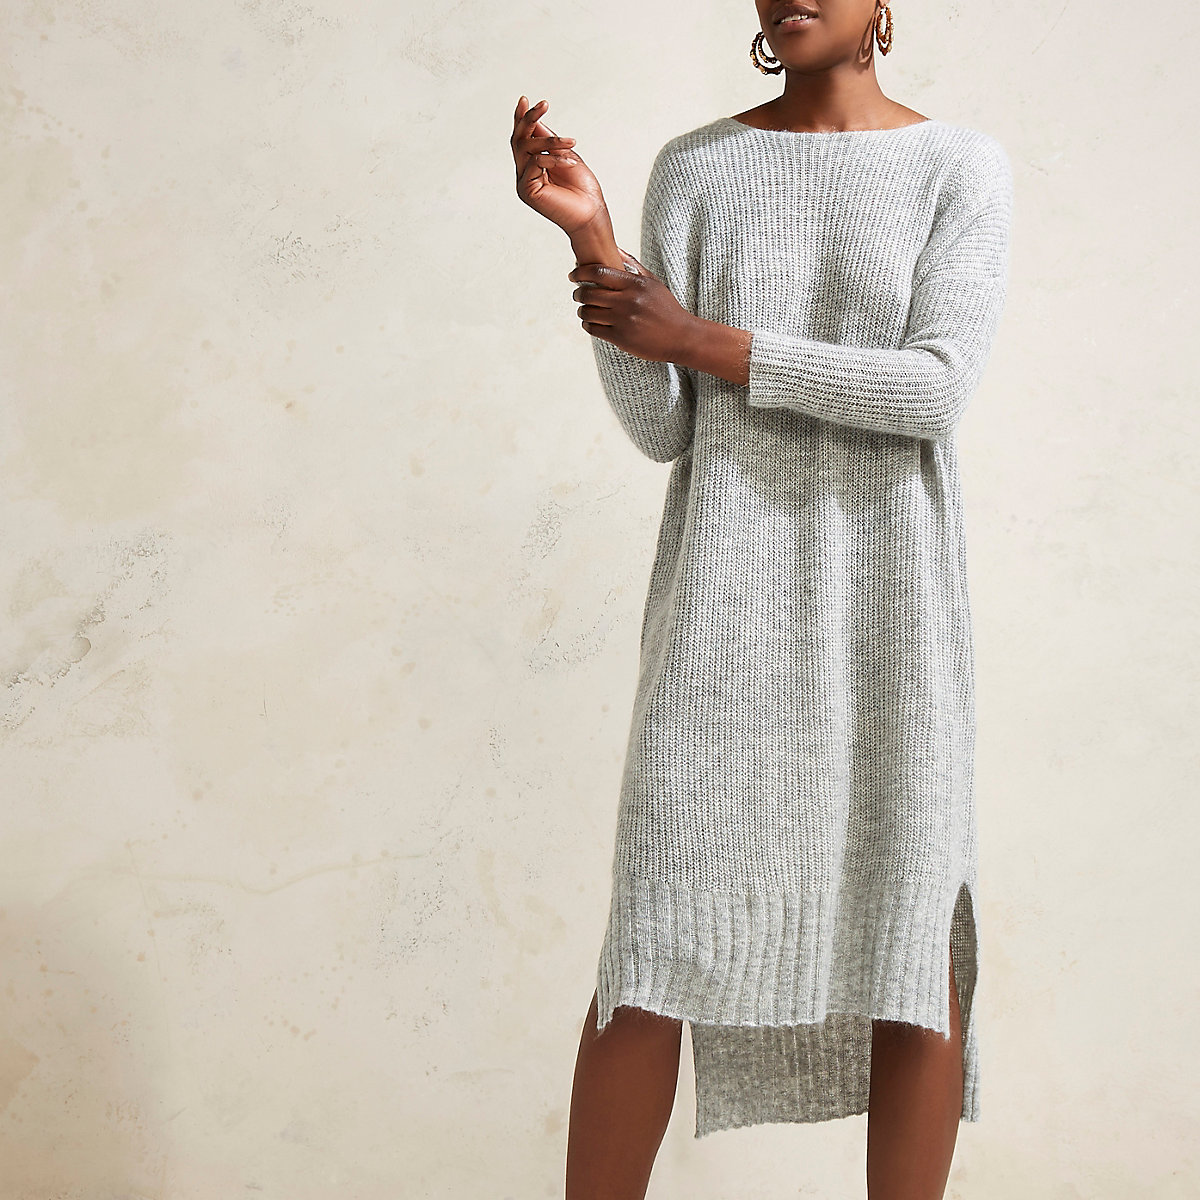 Grey RI Studio maxi sweater knit dress